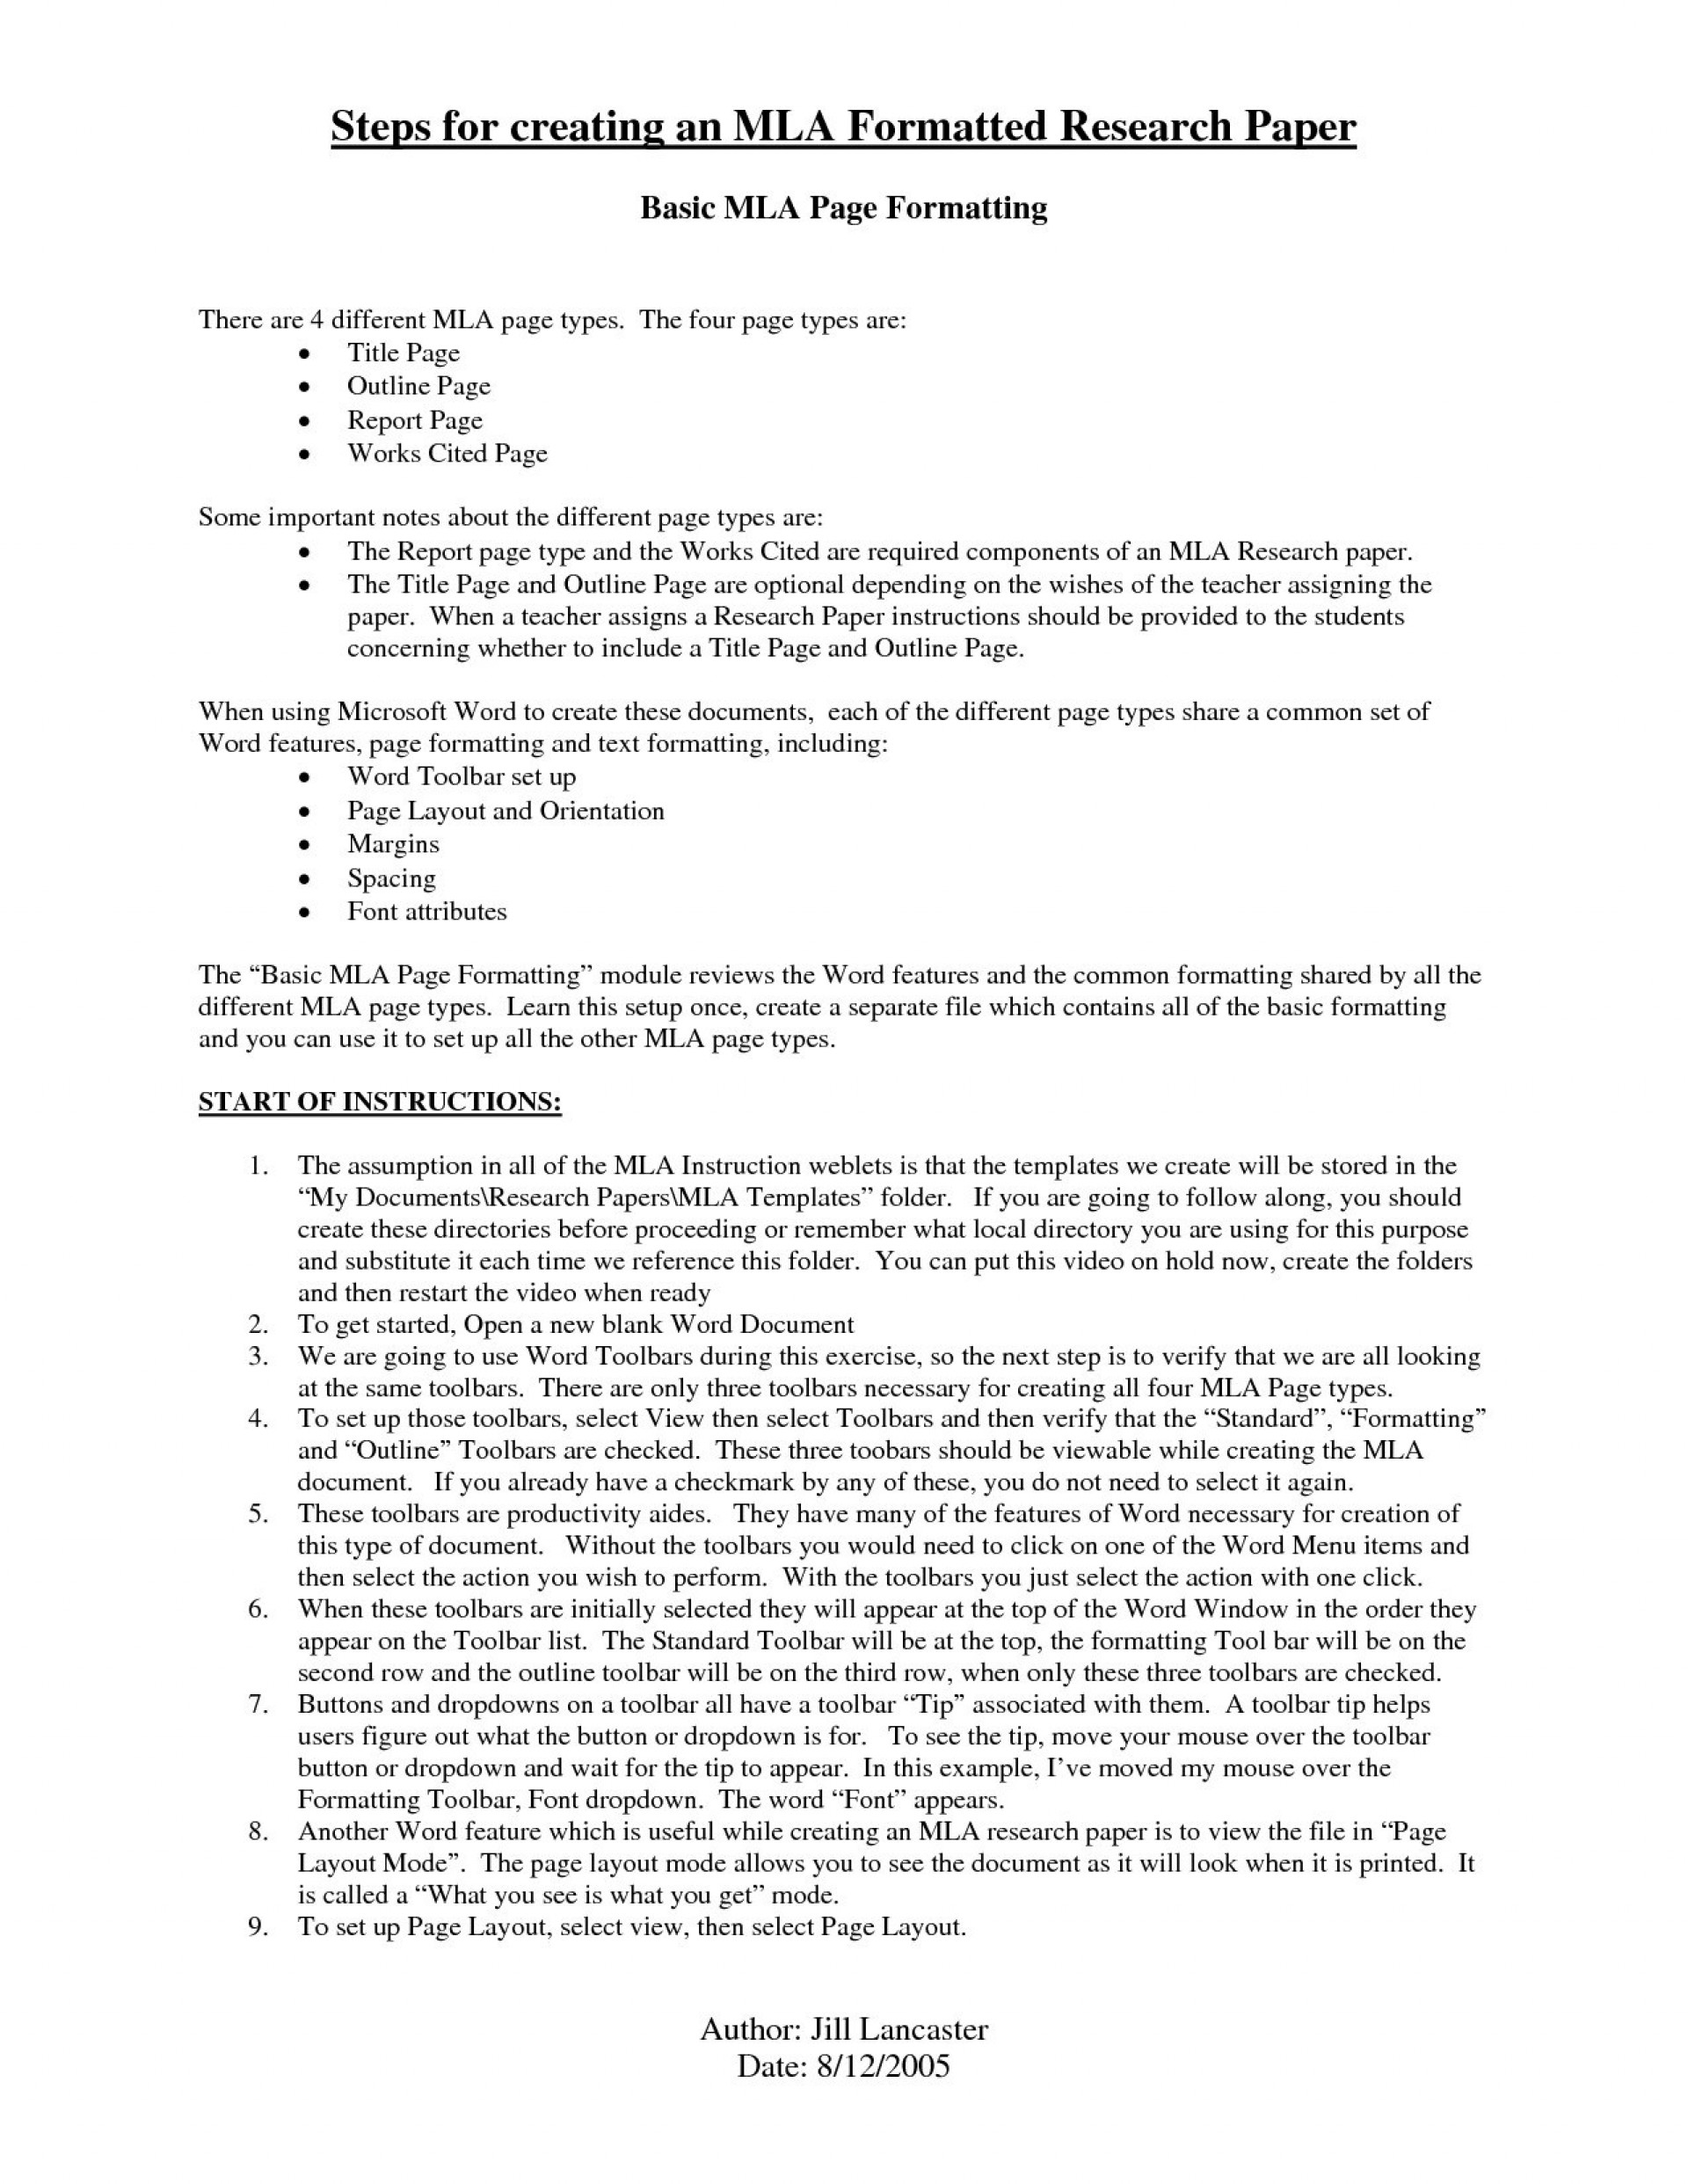 010 Essay Example How To Write Research Mla Format Works Cited Scarlet Letter Fresh Citation New Act Conclusions The Excellent A Proposal Paper In Apa 1920